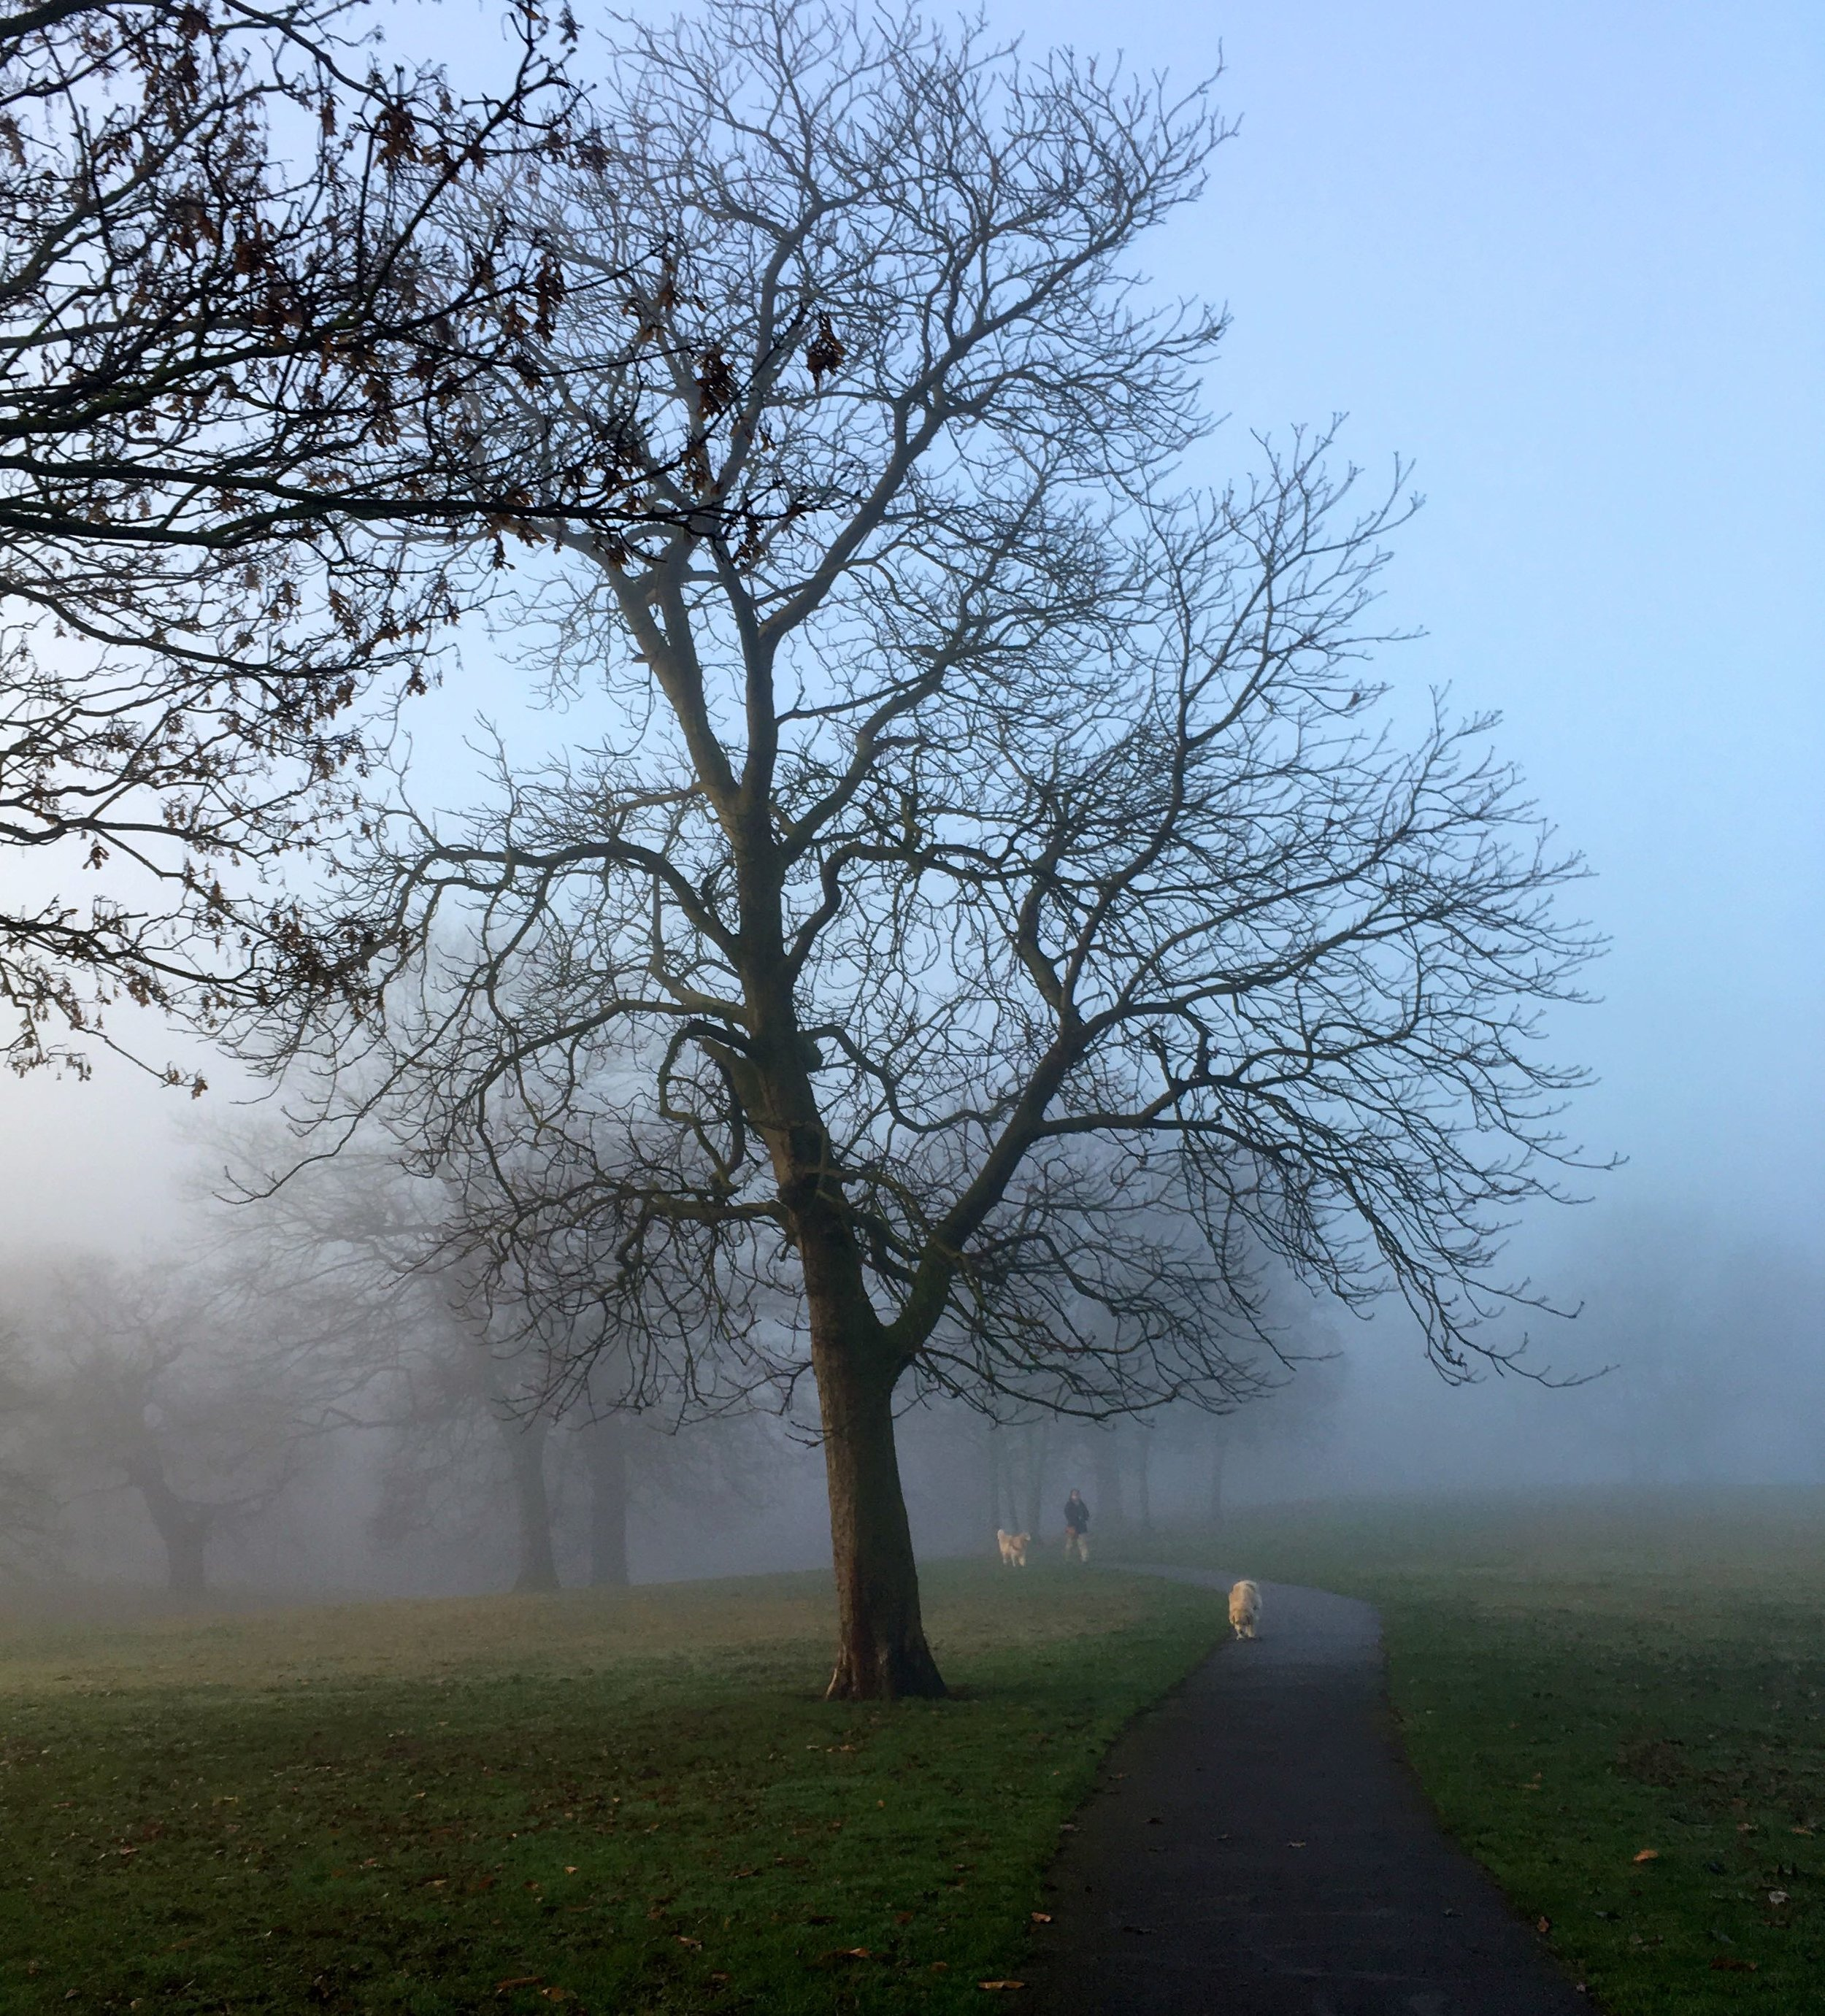 Fog inside greenwich park made for some eery views and I knew I had to take some pictures